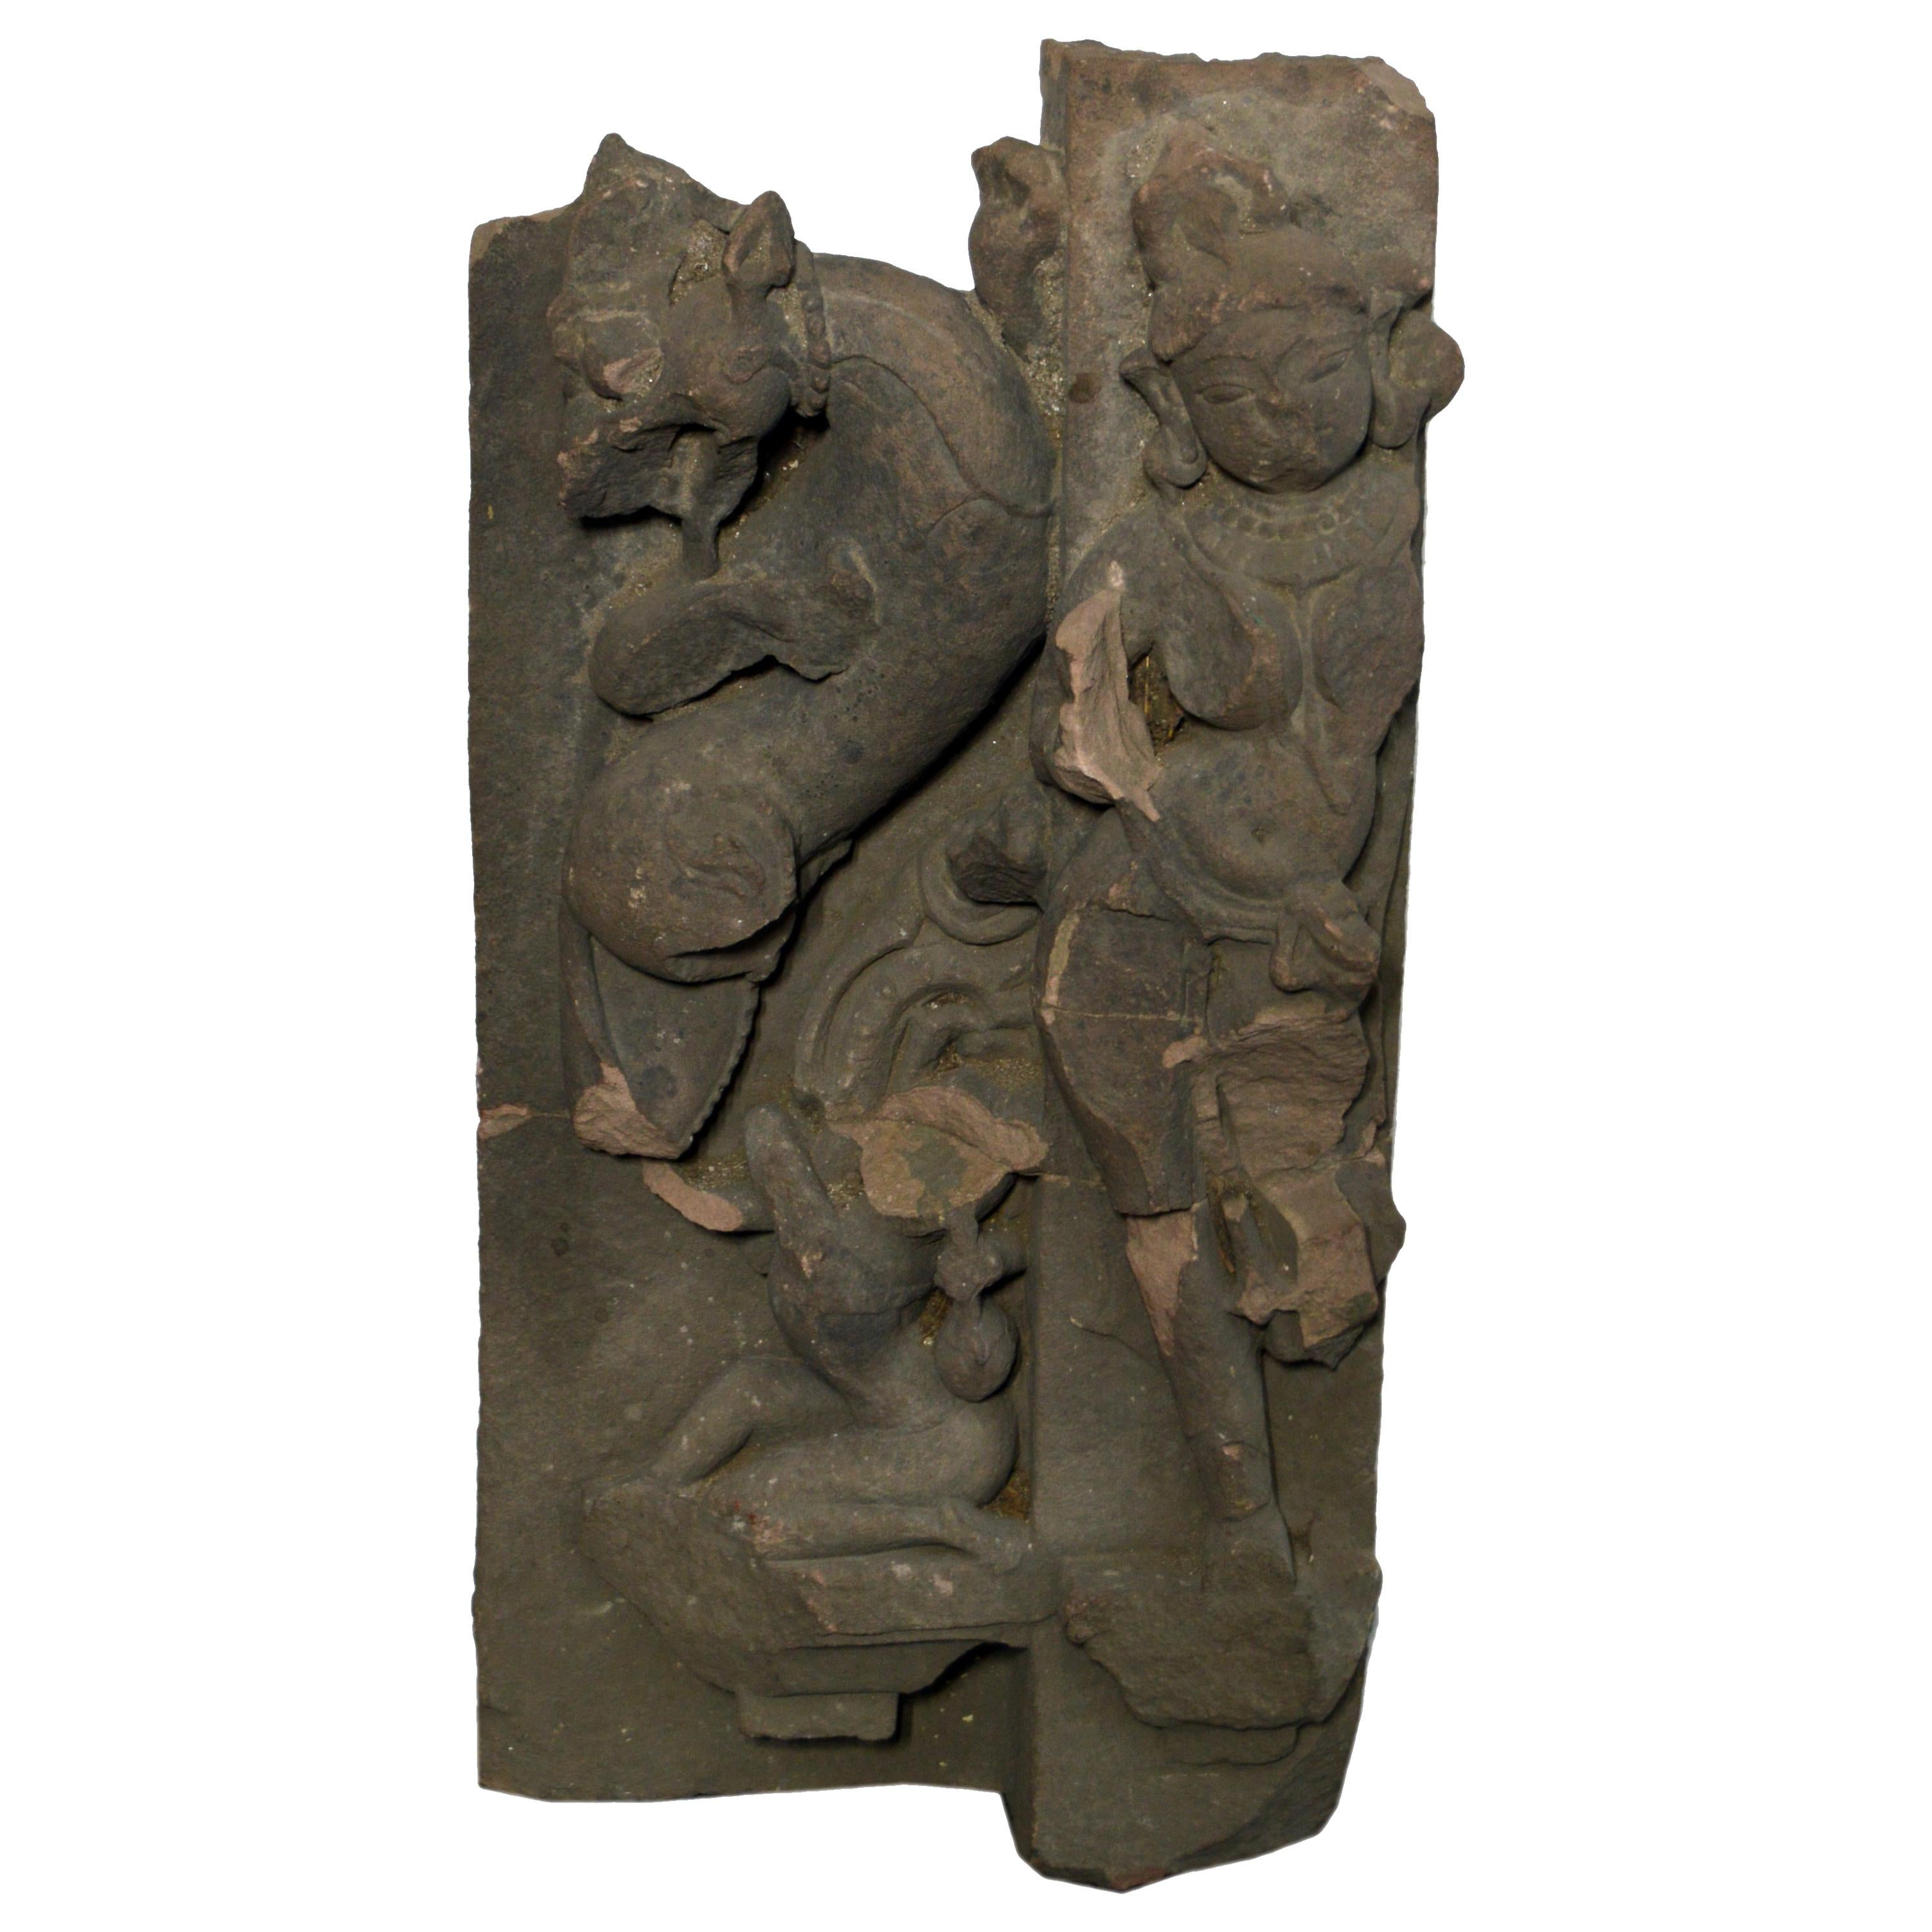 17th Century Asian Hand-Carved Stone Temple Sculpture of a Female Divinity